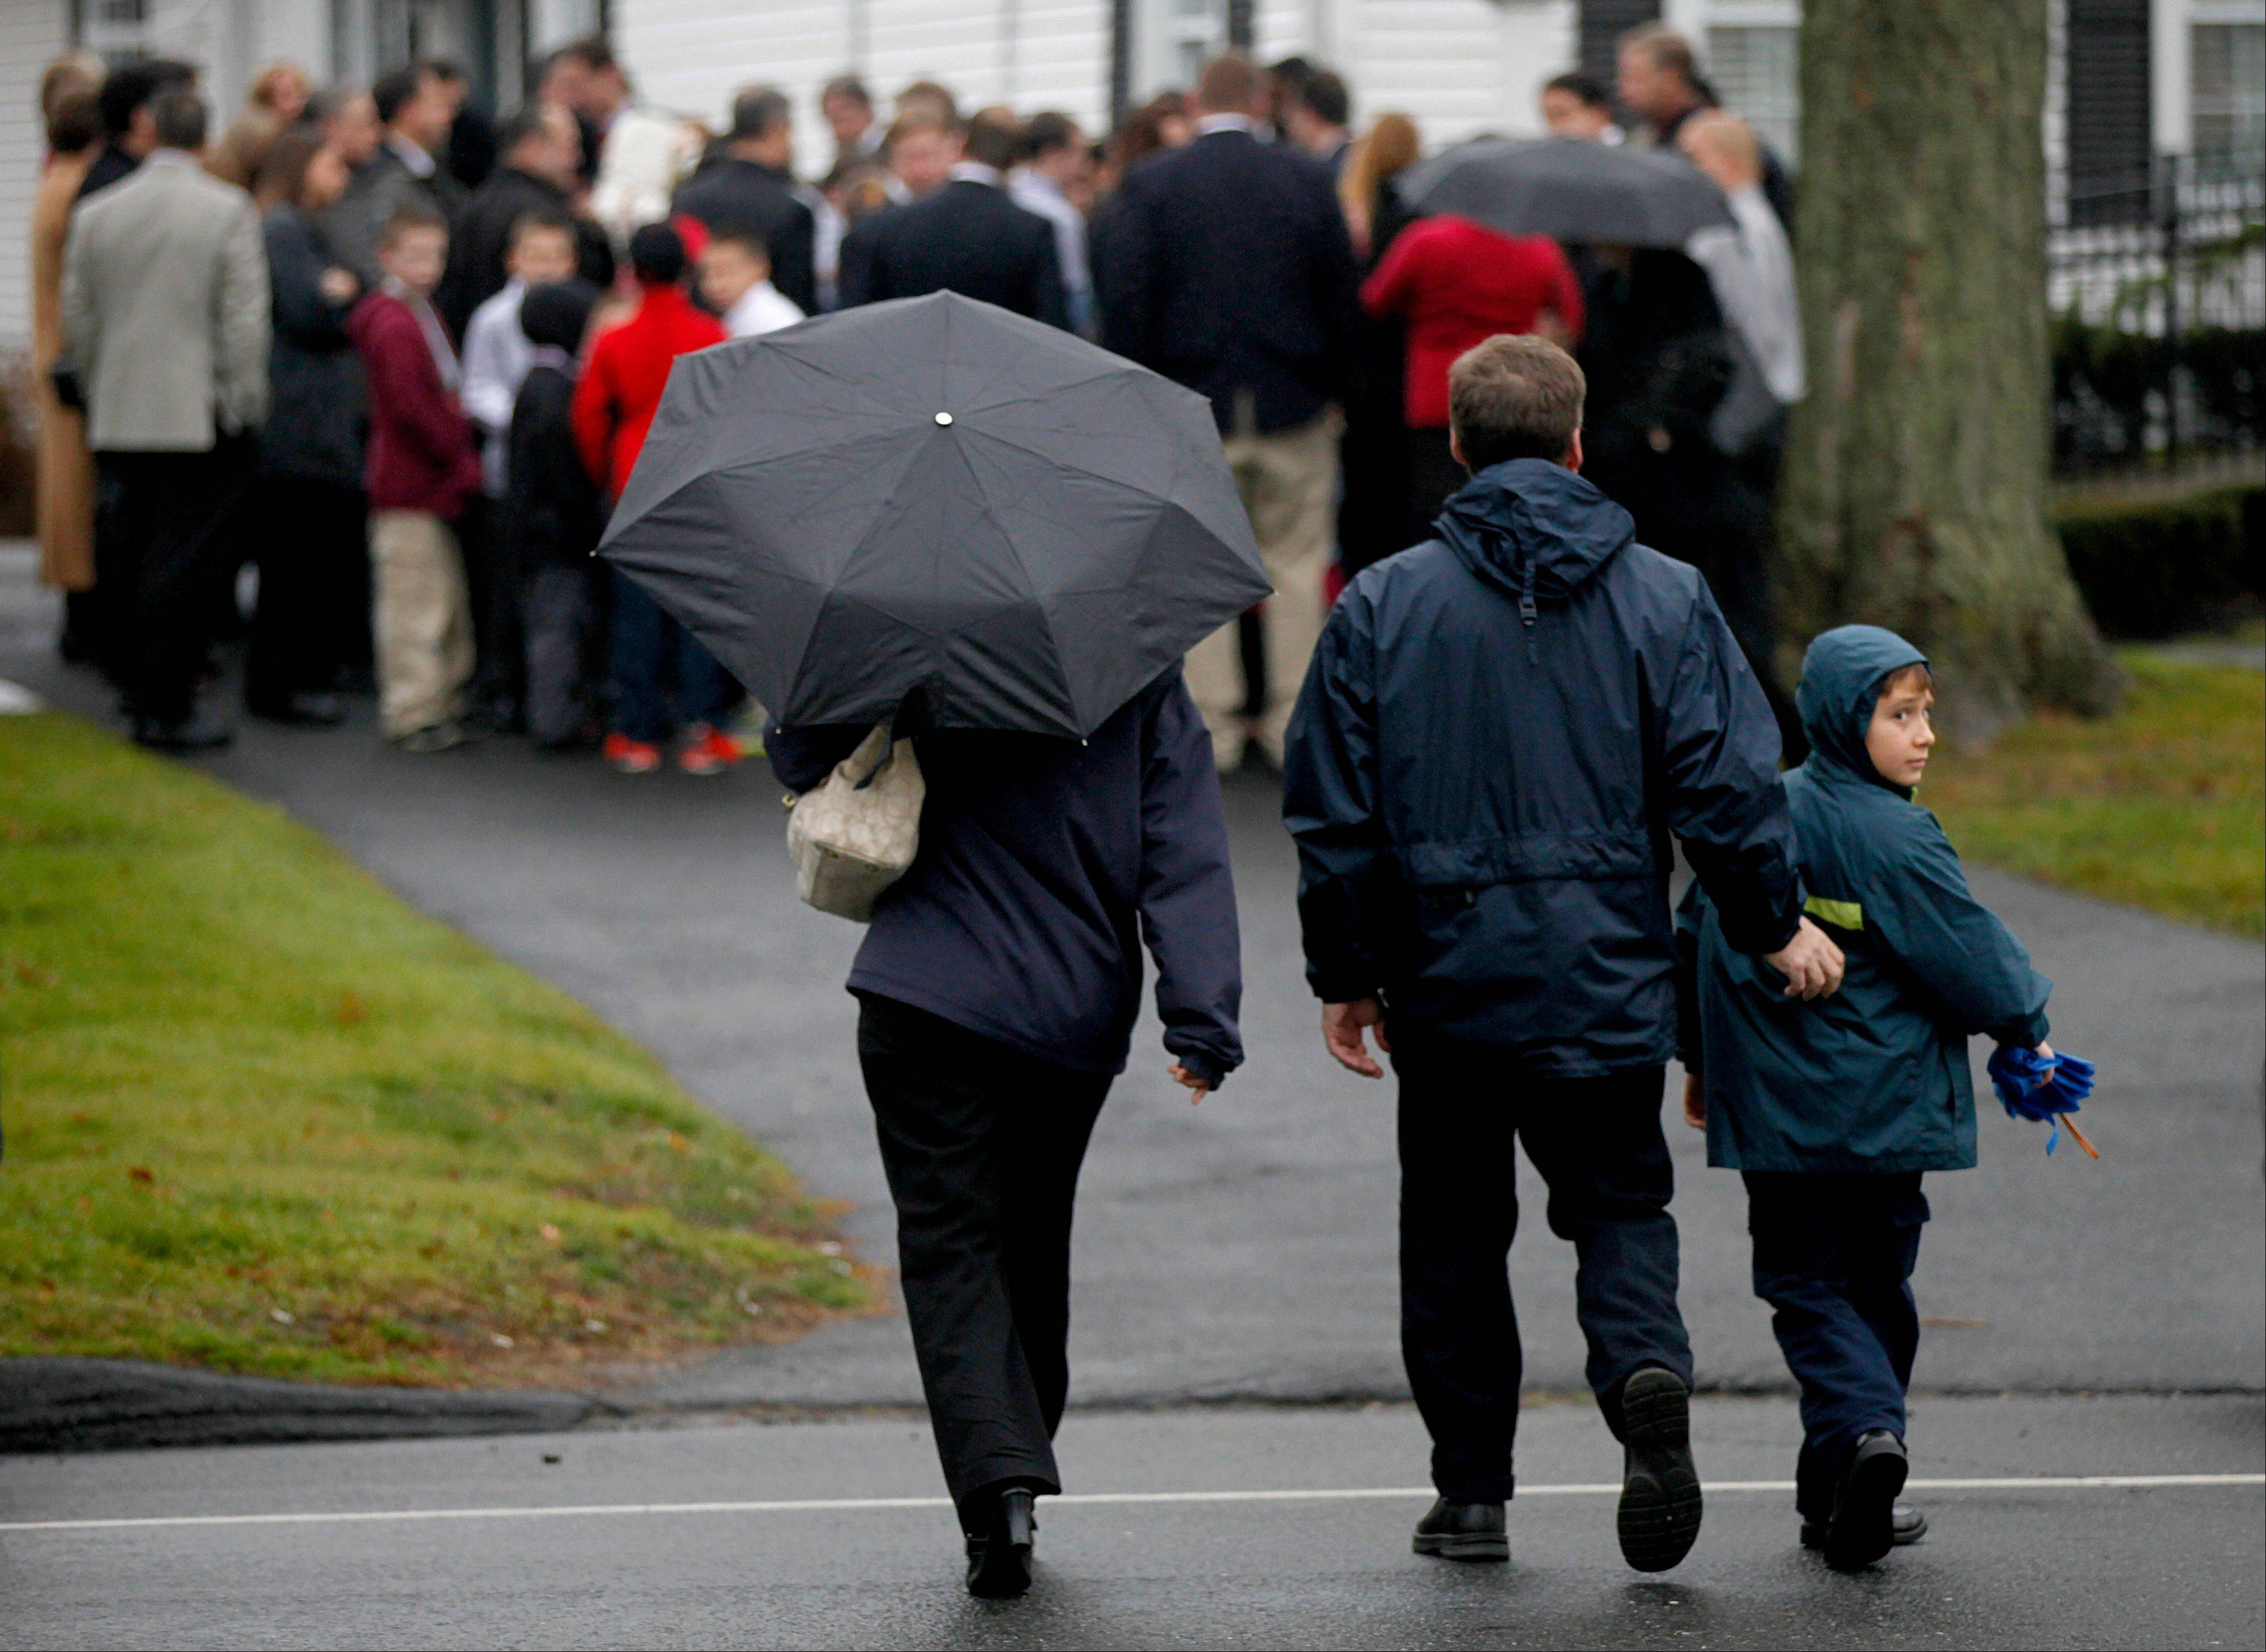 Mourners arrive for the funeral service for 6-year-old Jack Pinto, Monday, Dec. 17, 2012 in Newtown, Conn. Pinto was killed when a gunman walked into Sandy Hook Elementary School in Newtown Friday and opened fire, killing 26 people, including 20 children.